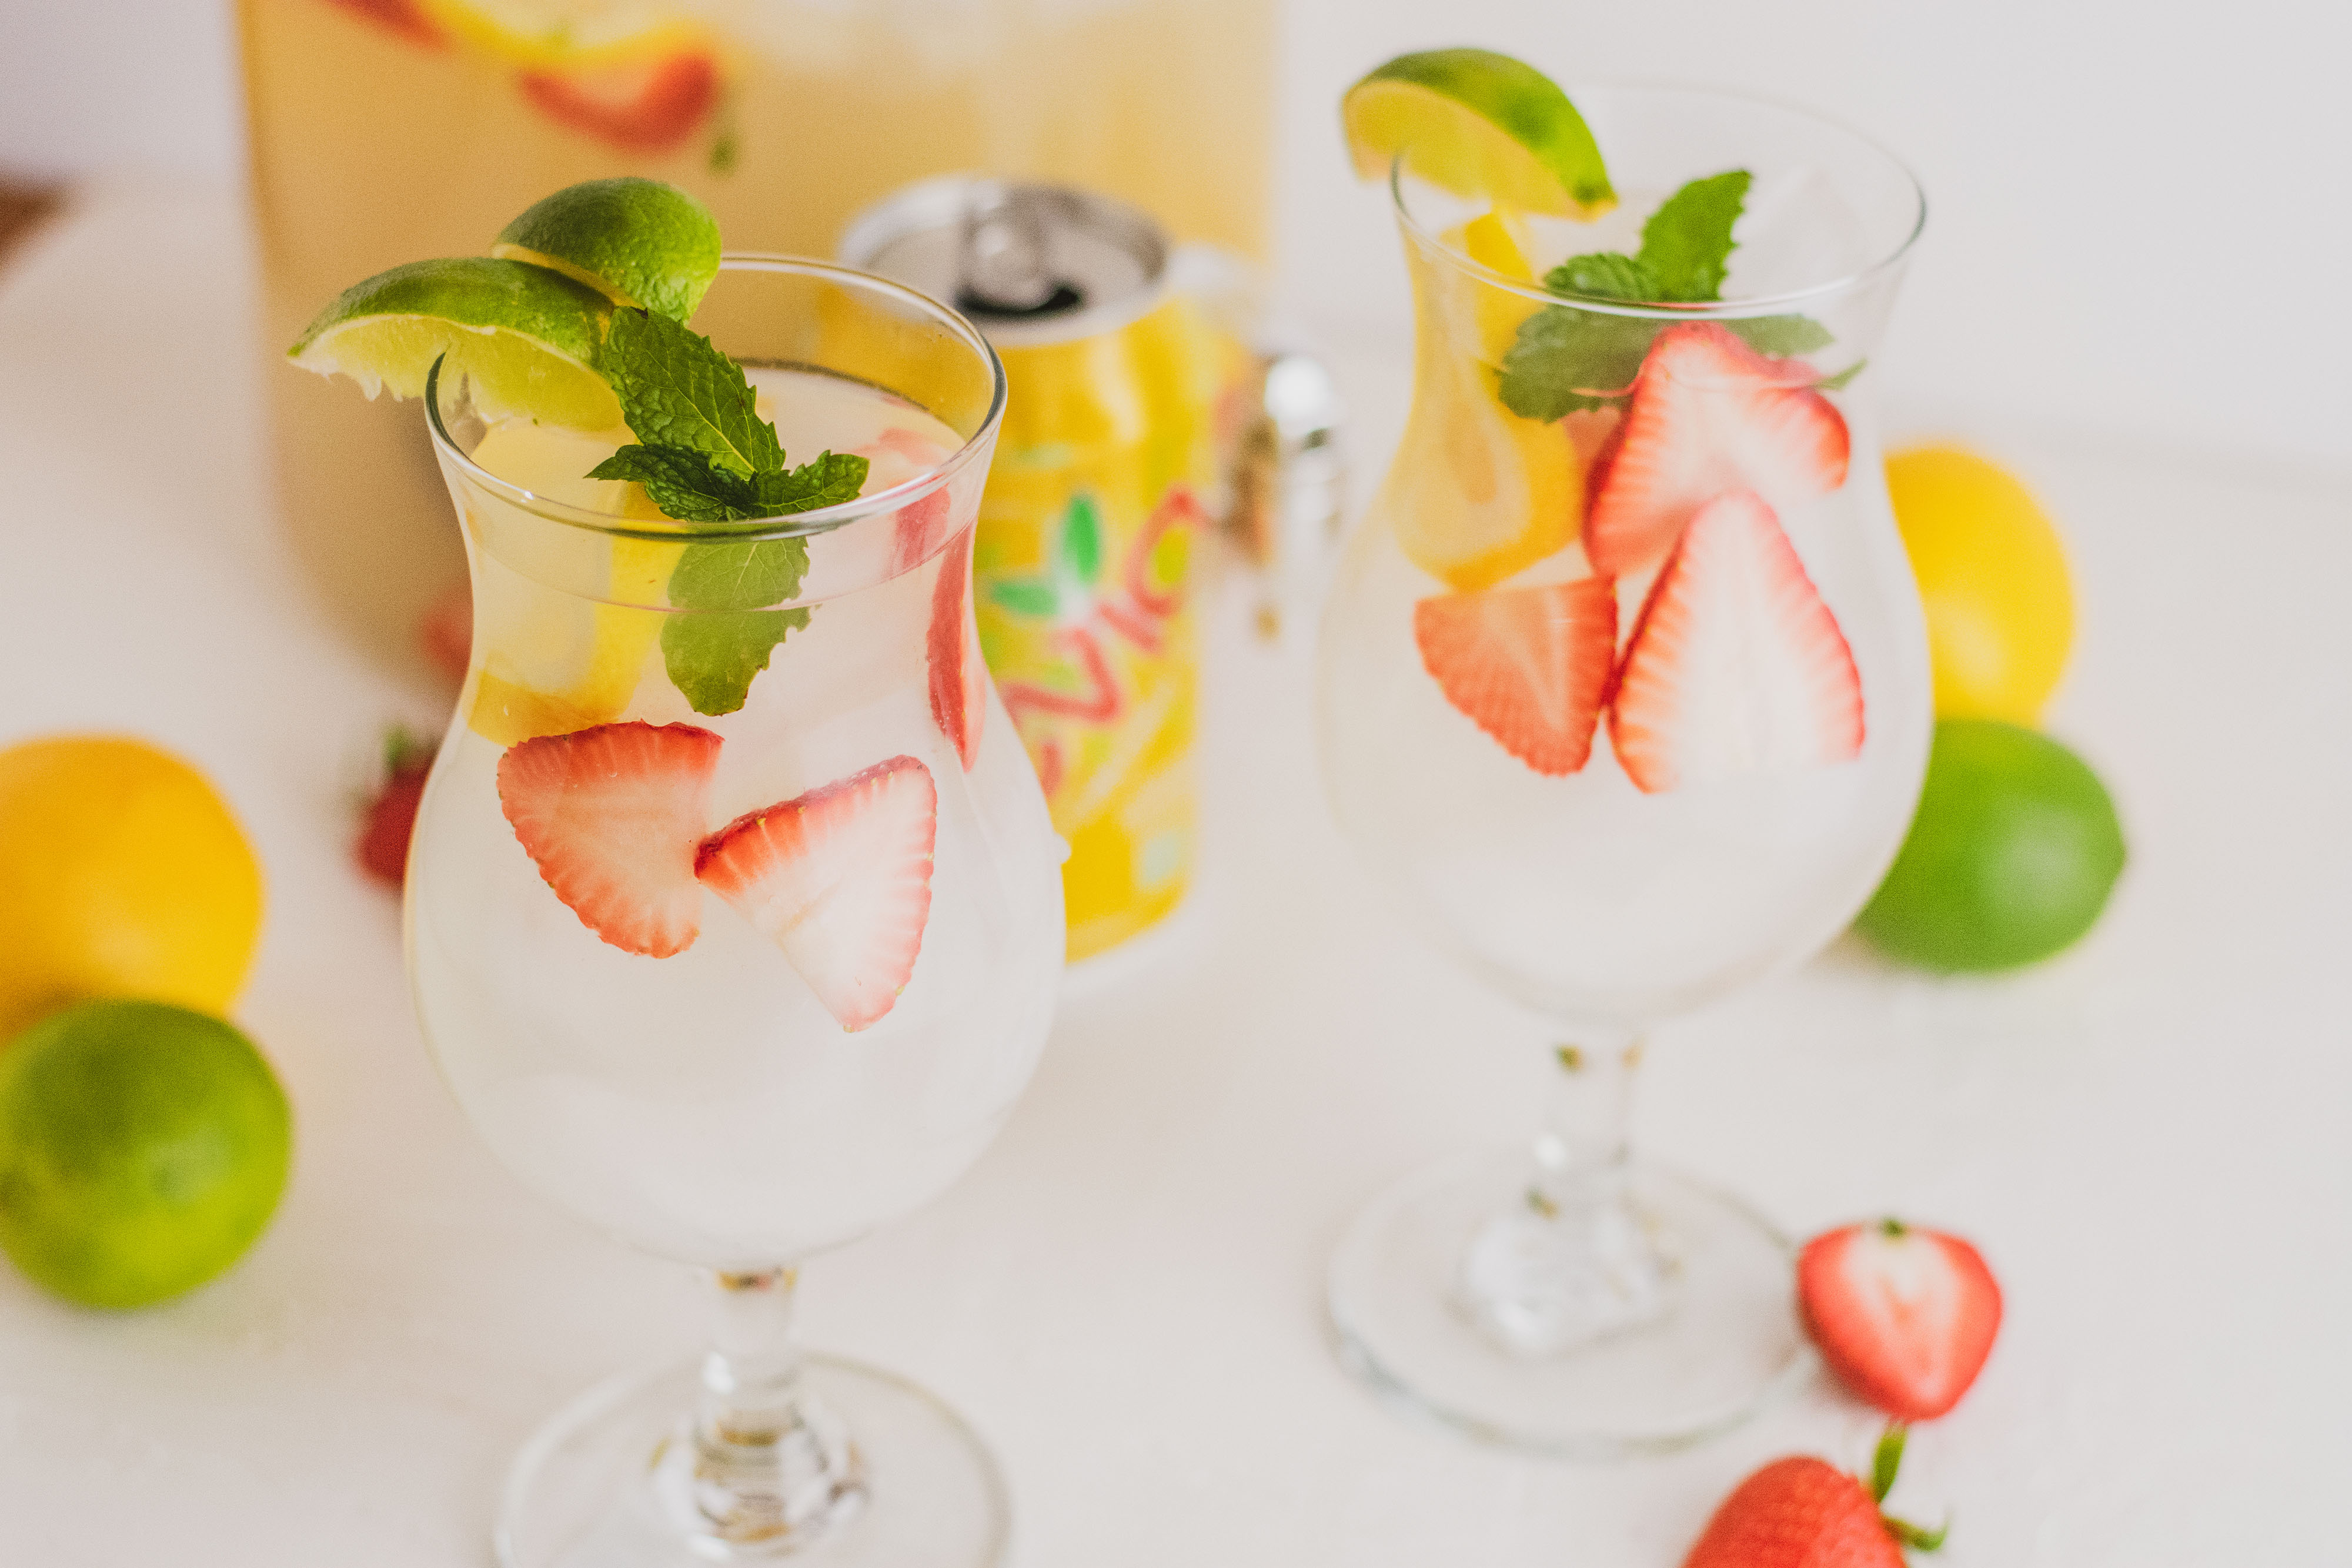 Two glasses with low carb strawberry lemonade mojito drink. With sliced strawberries and lemons and mint leaves on a white surface.